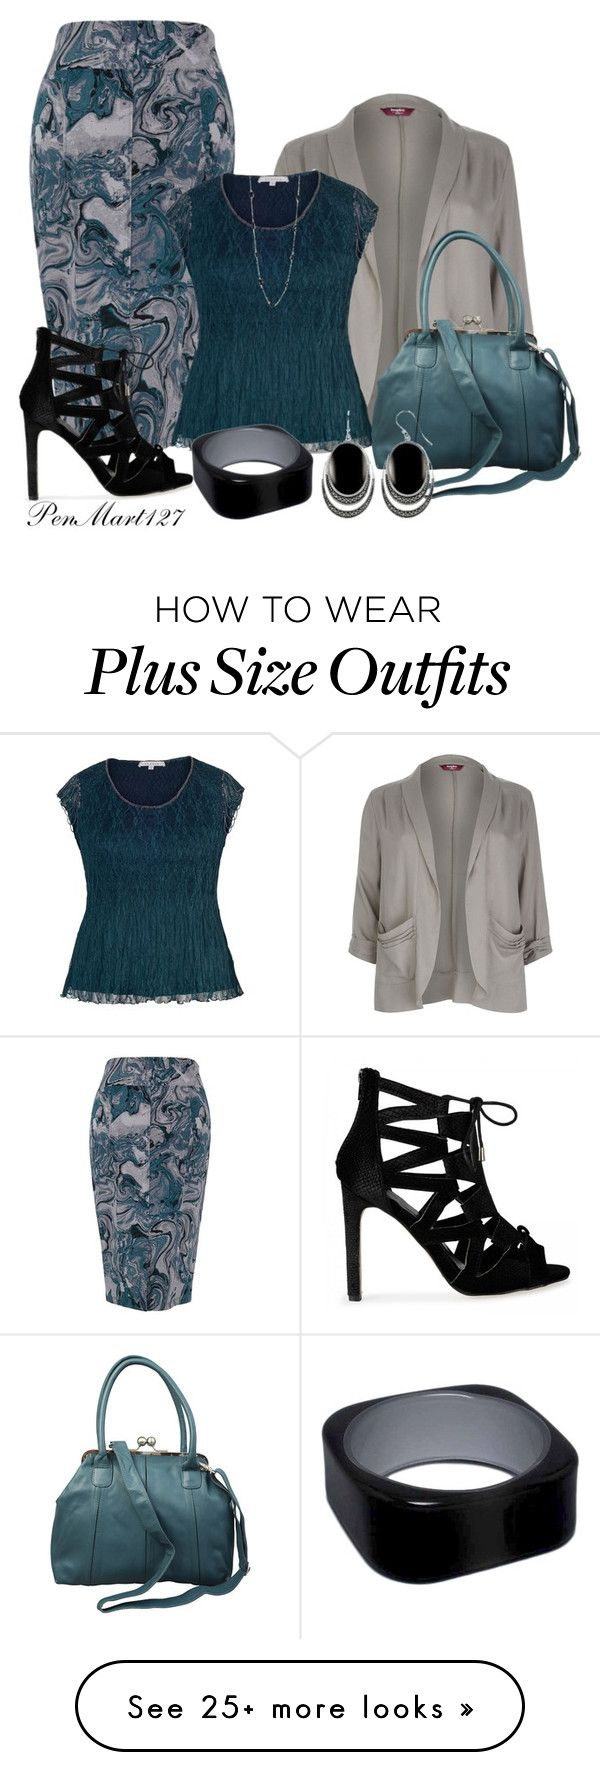 """Content #Plussize"" by penny-martin on Polyvore featuring Melissa McCarthy Seven7, Chesca and plus size clothing"